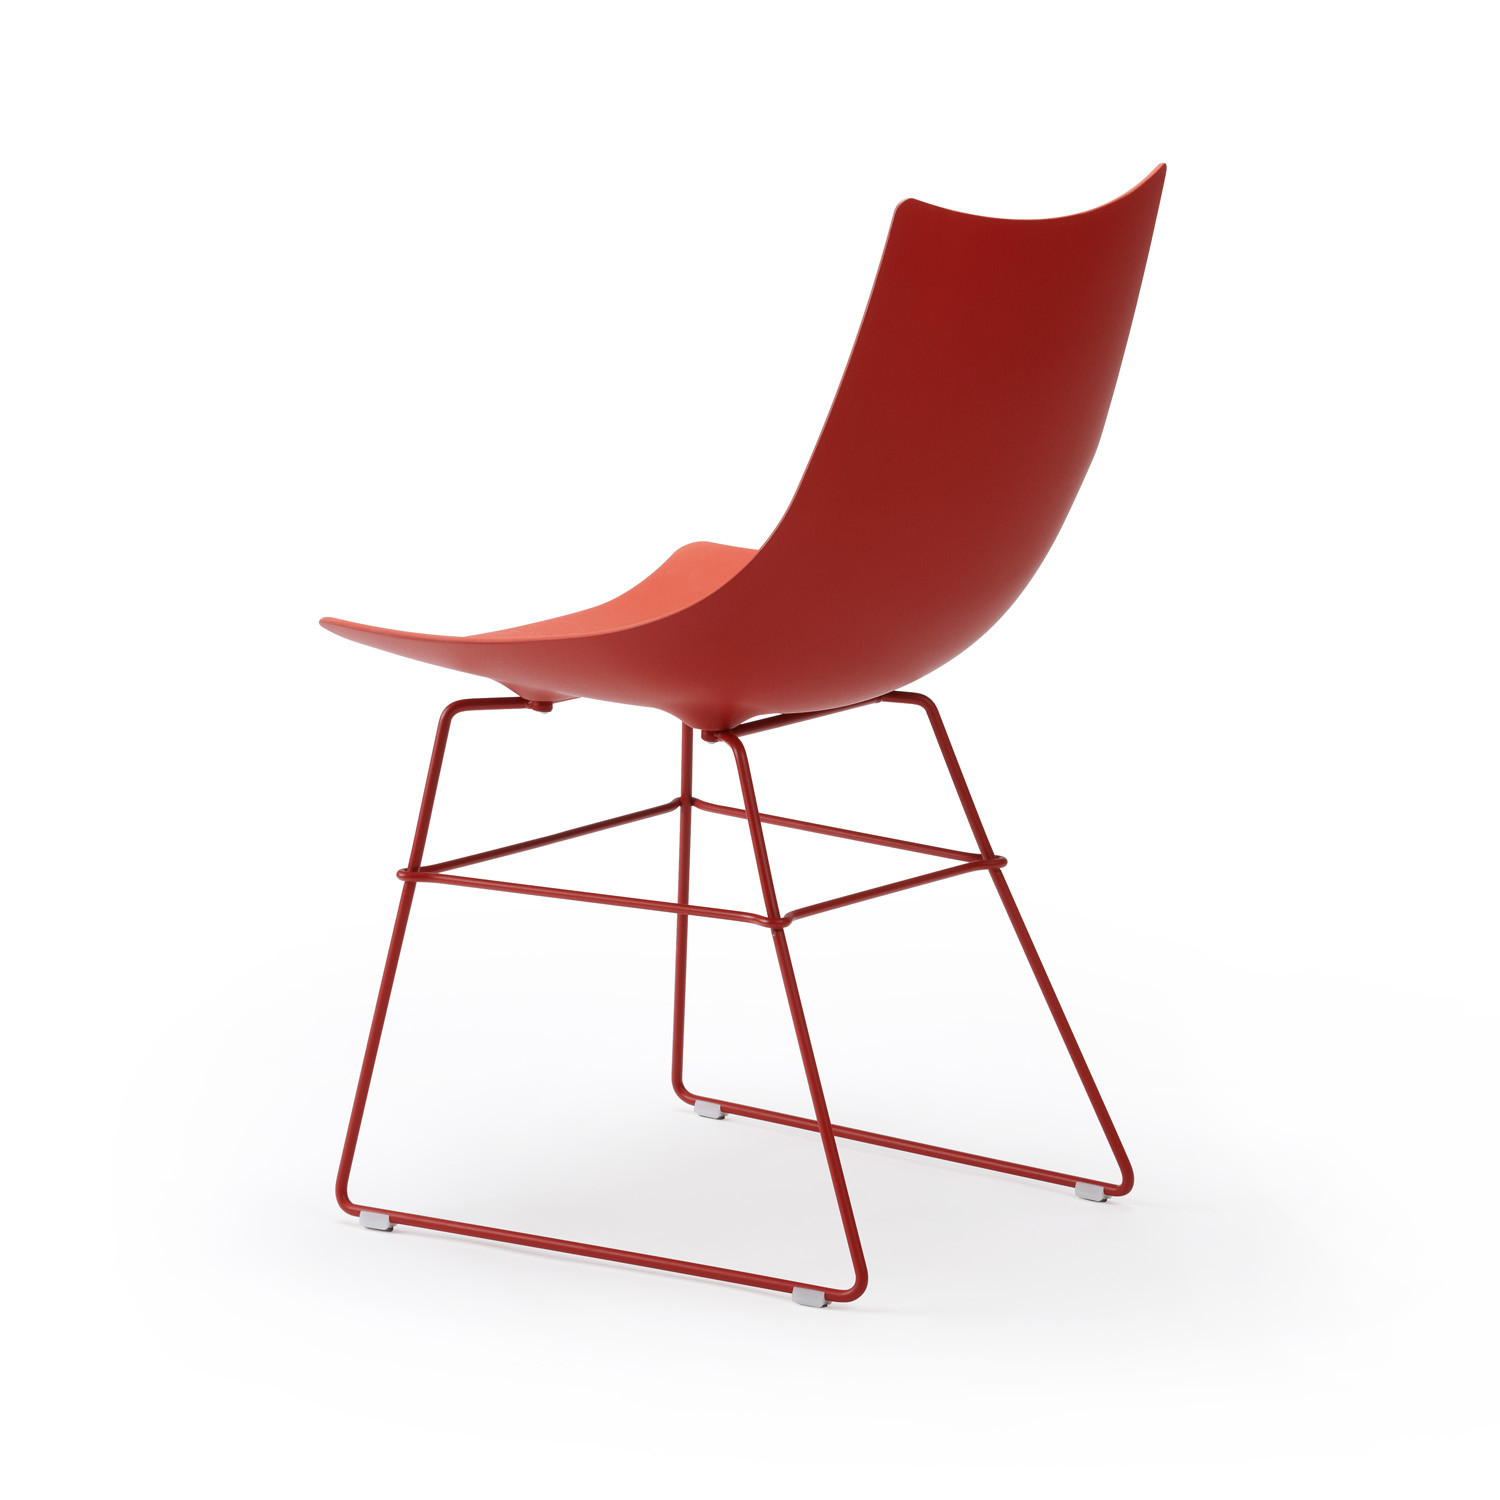 Luc Sled Base Chair from Apres